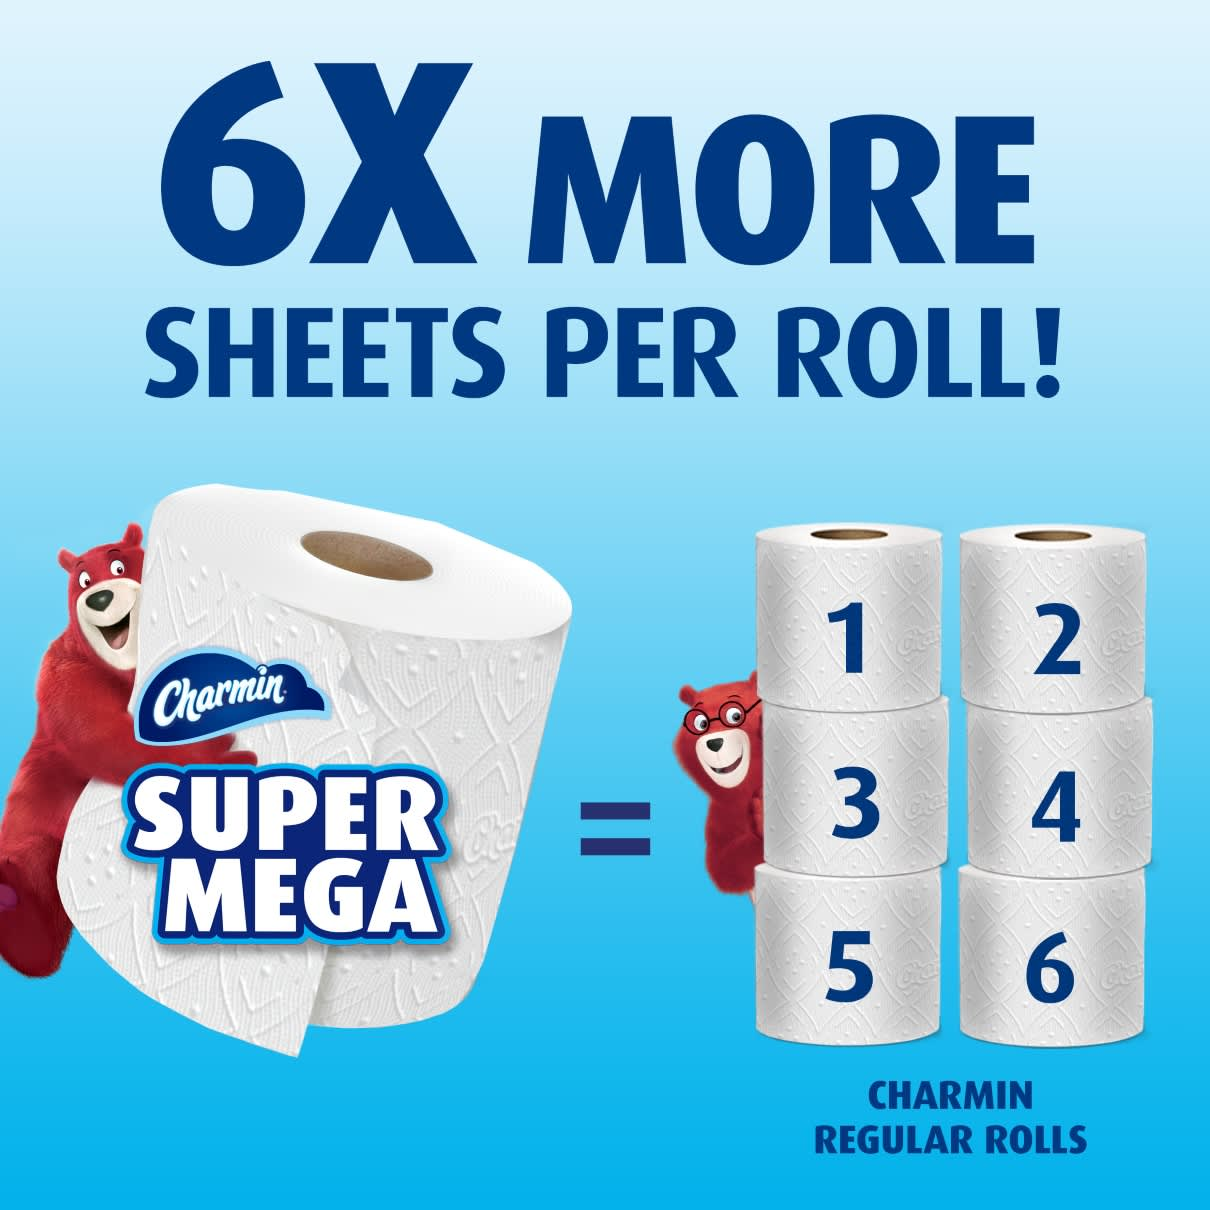 Get 6X more sheets per roll with ultra strong super mega roll